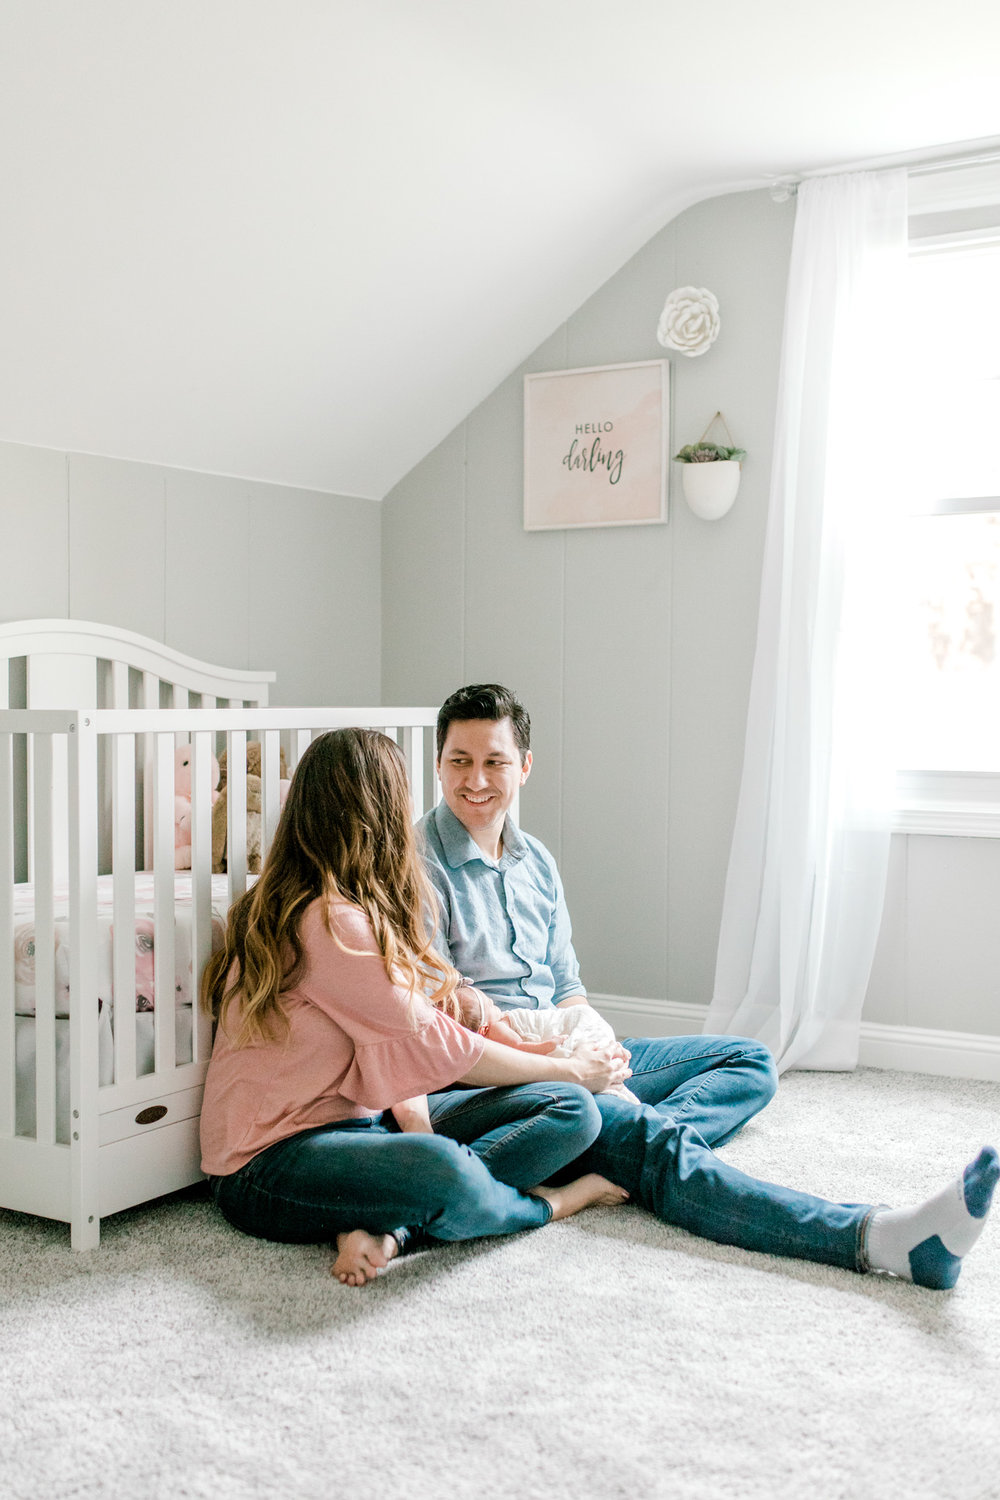 Newborn Lifestyle Session | In-Home Lifestyle | West Michigan Family Photographer | Light & Airy Photographer